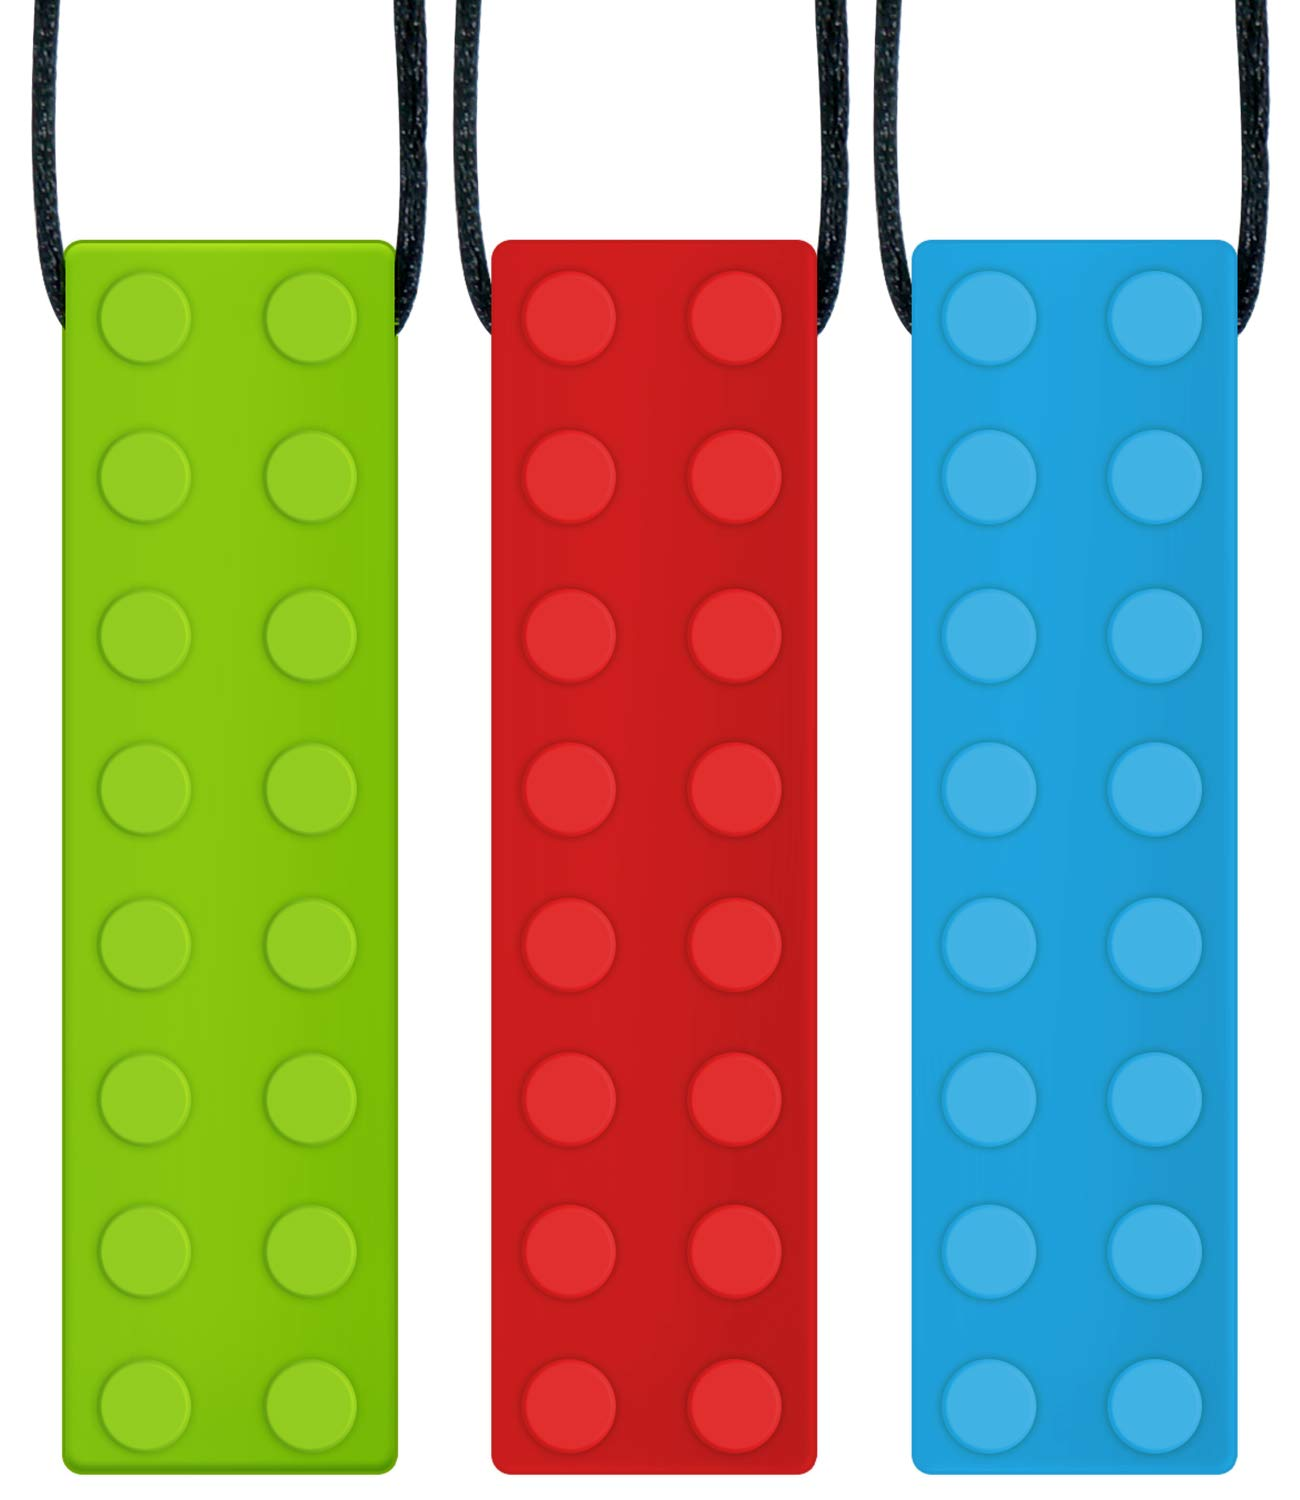 Panny & Mody Sensory Chew Necklace Pendant Chewable Jewelry Set for Boys and Girls(3 Pack), Silicone Oral Motor Sticks for Kids with ADHD, Teething, Autism, Biting Needs (Red, Green, Blue)